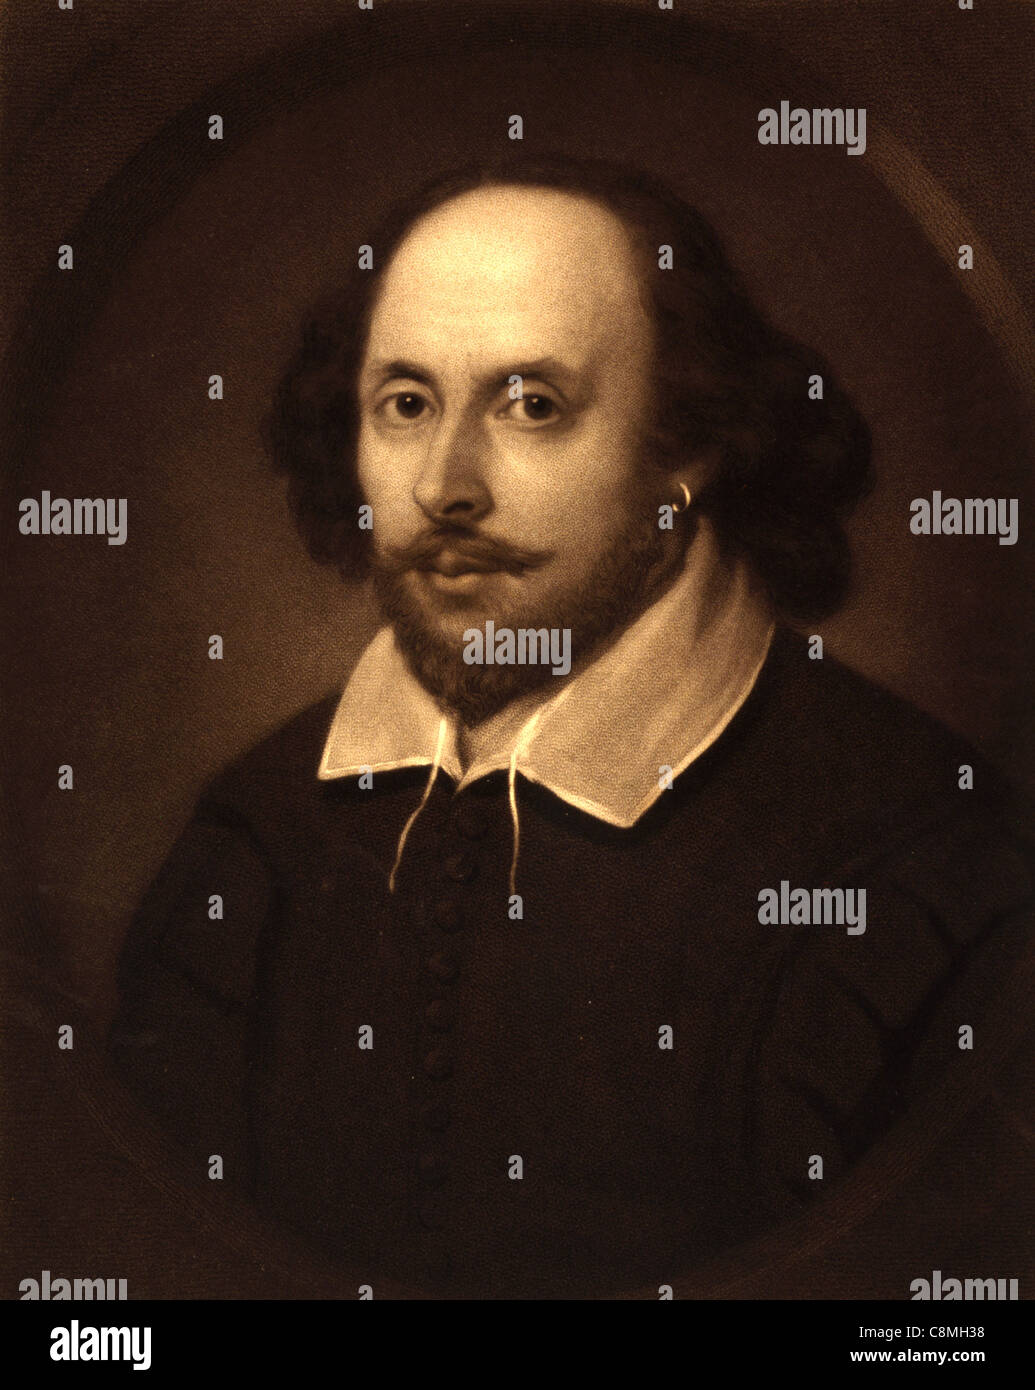 William Shakespeare, englischer Dichter und Dramatiker. Porträt von William Shakespeare Stockfoto